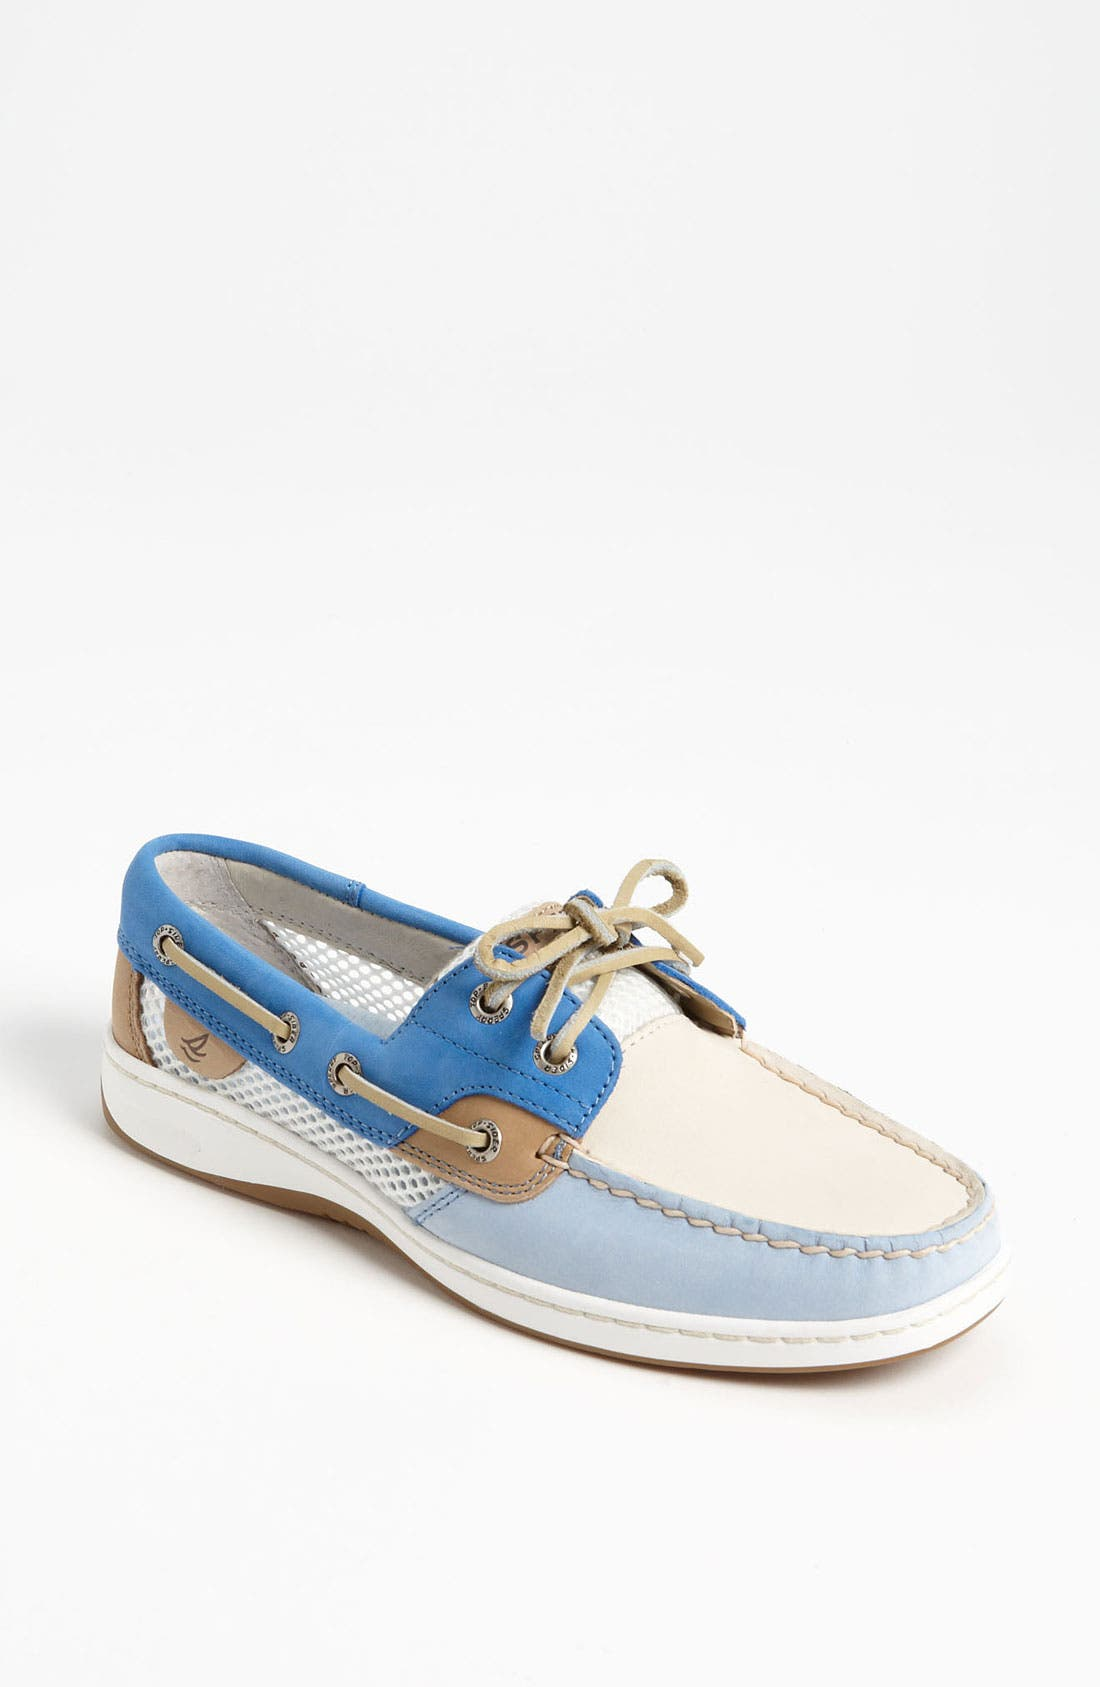 Alternate Image 1 Selected - Sperry Top-Sider® 'Bluefish 2-Eye' Boat Shoe (Women)